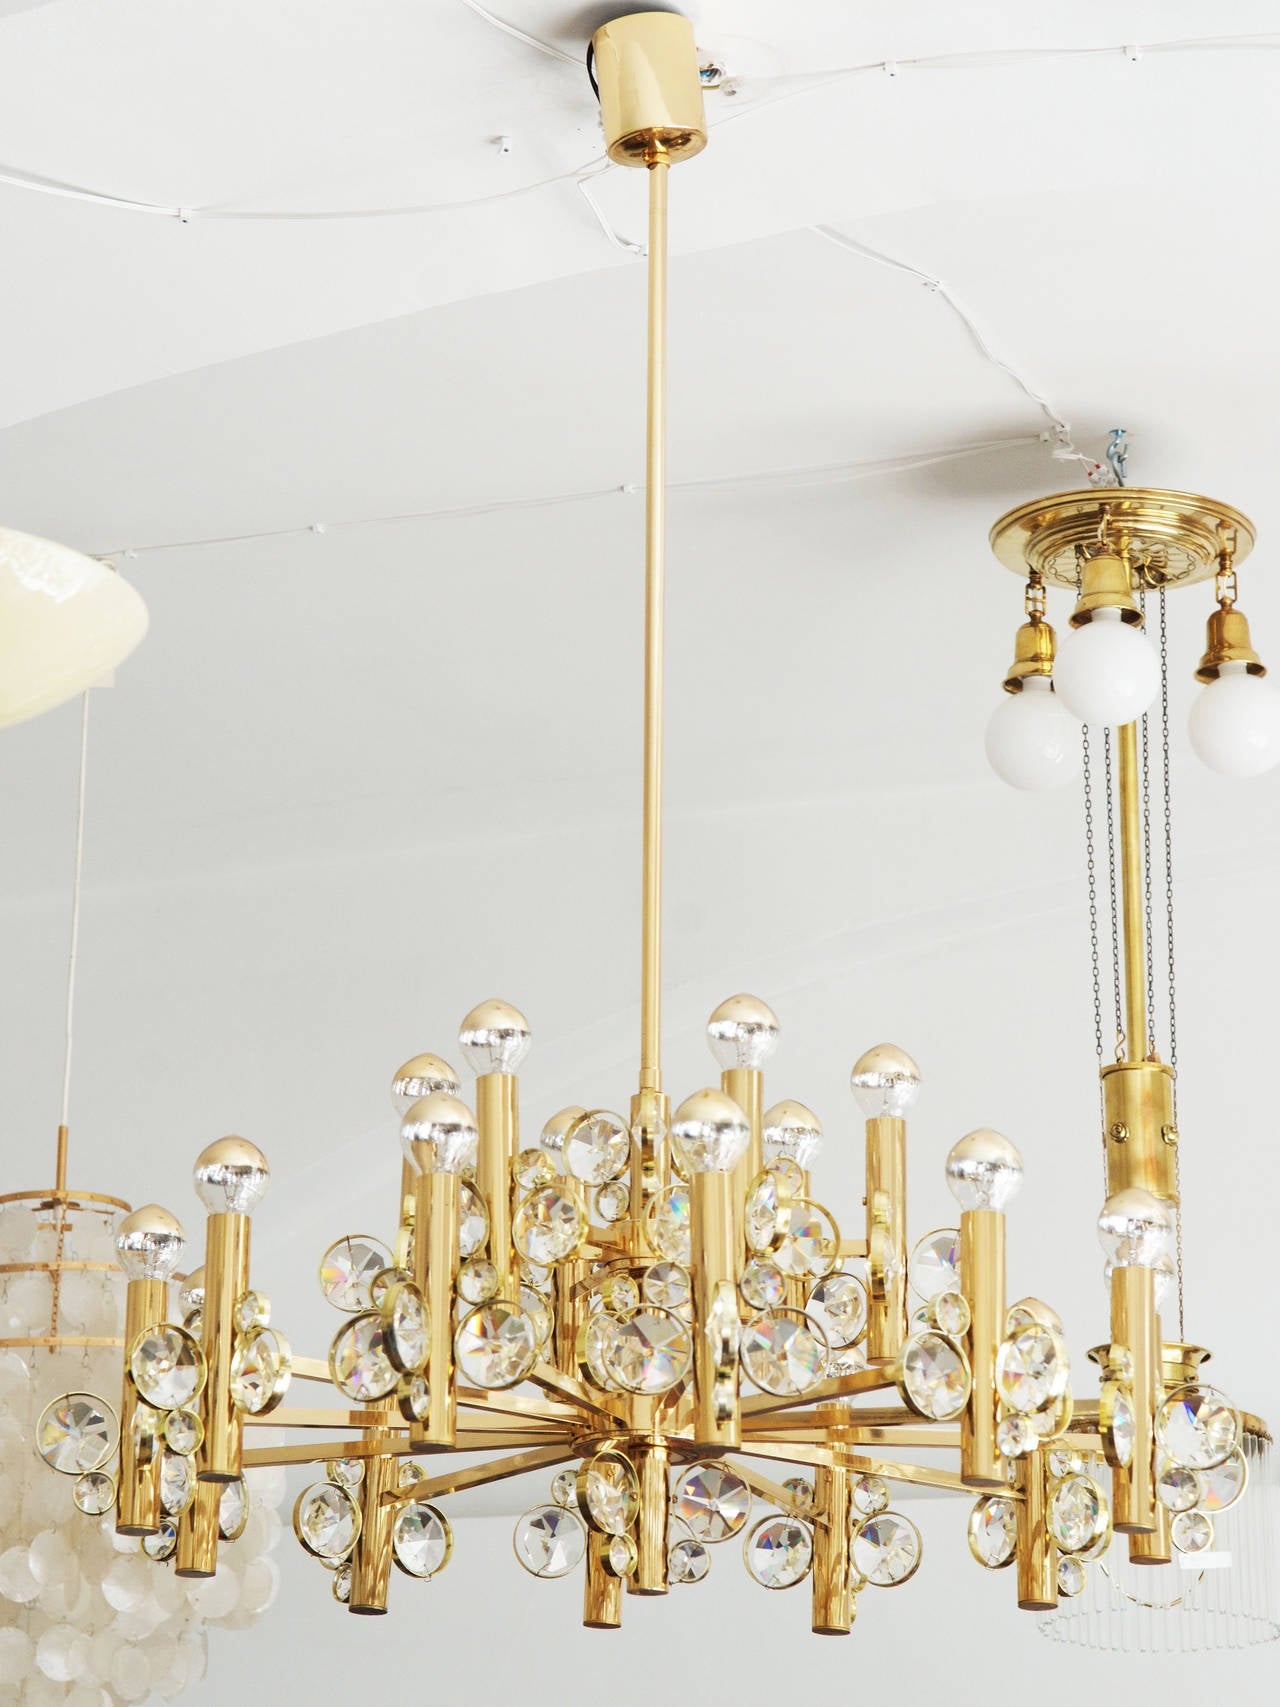 Italian Large Impressive Cut Crystal Chandelier Attributed to Gaetano Sciolari For Sale